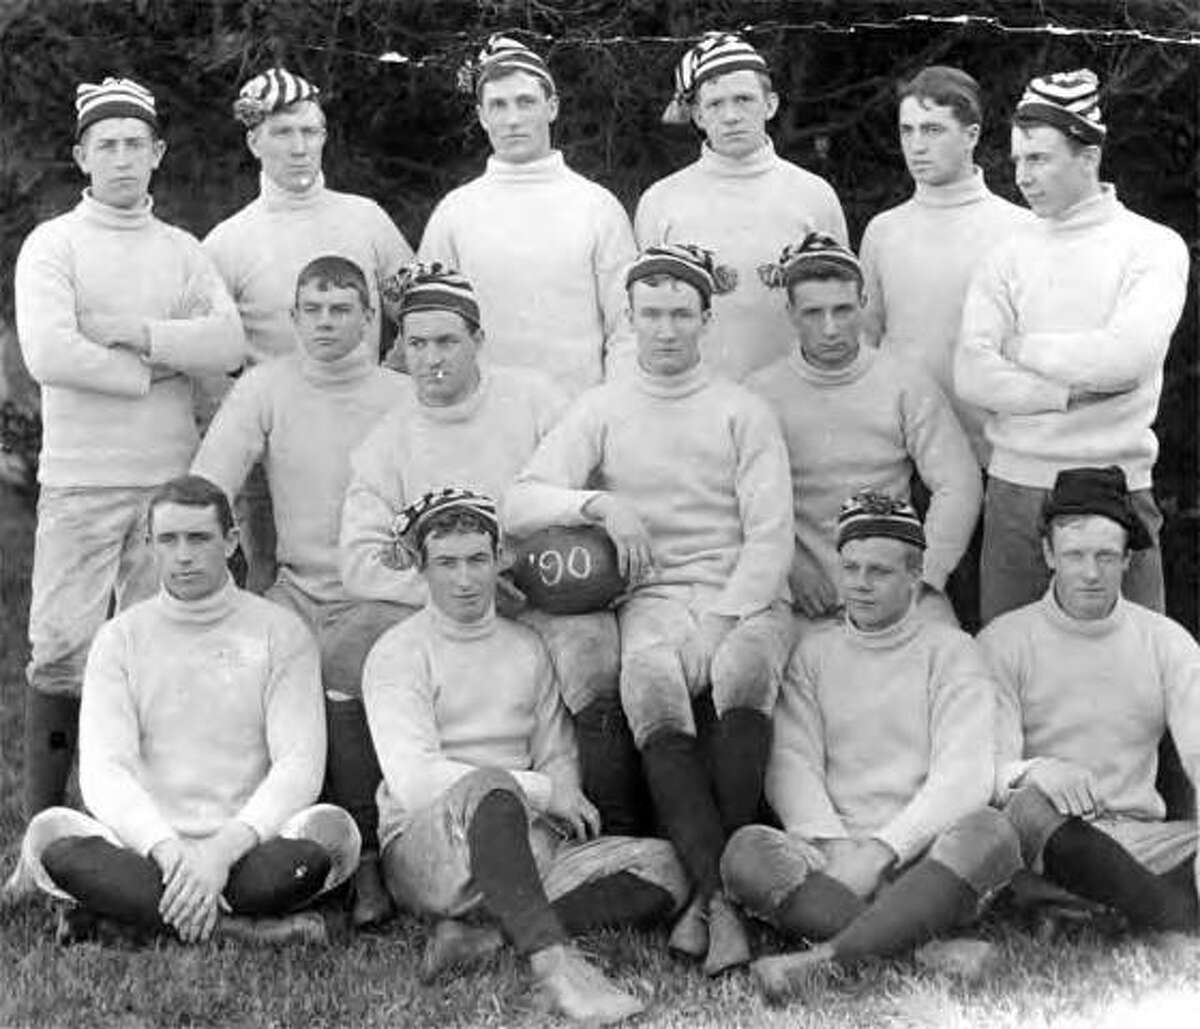 On Nov. 29, 1890, the first Army-Navy football game was played at West Point, New York; Navy defeated Army, 24-0. The 1890 Navy squad is pictured above.